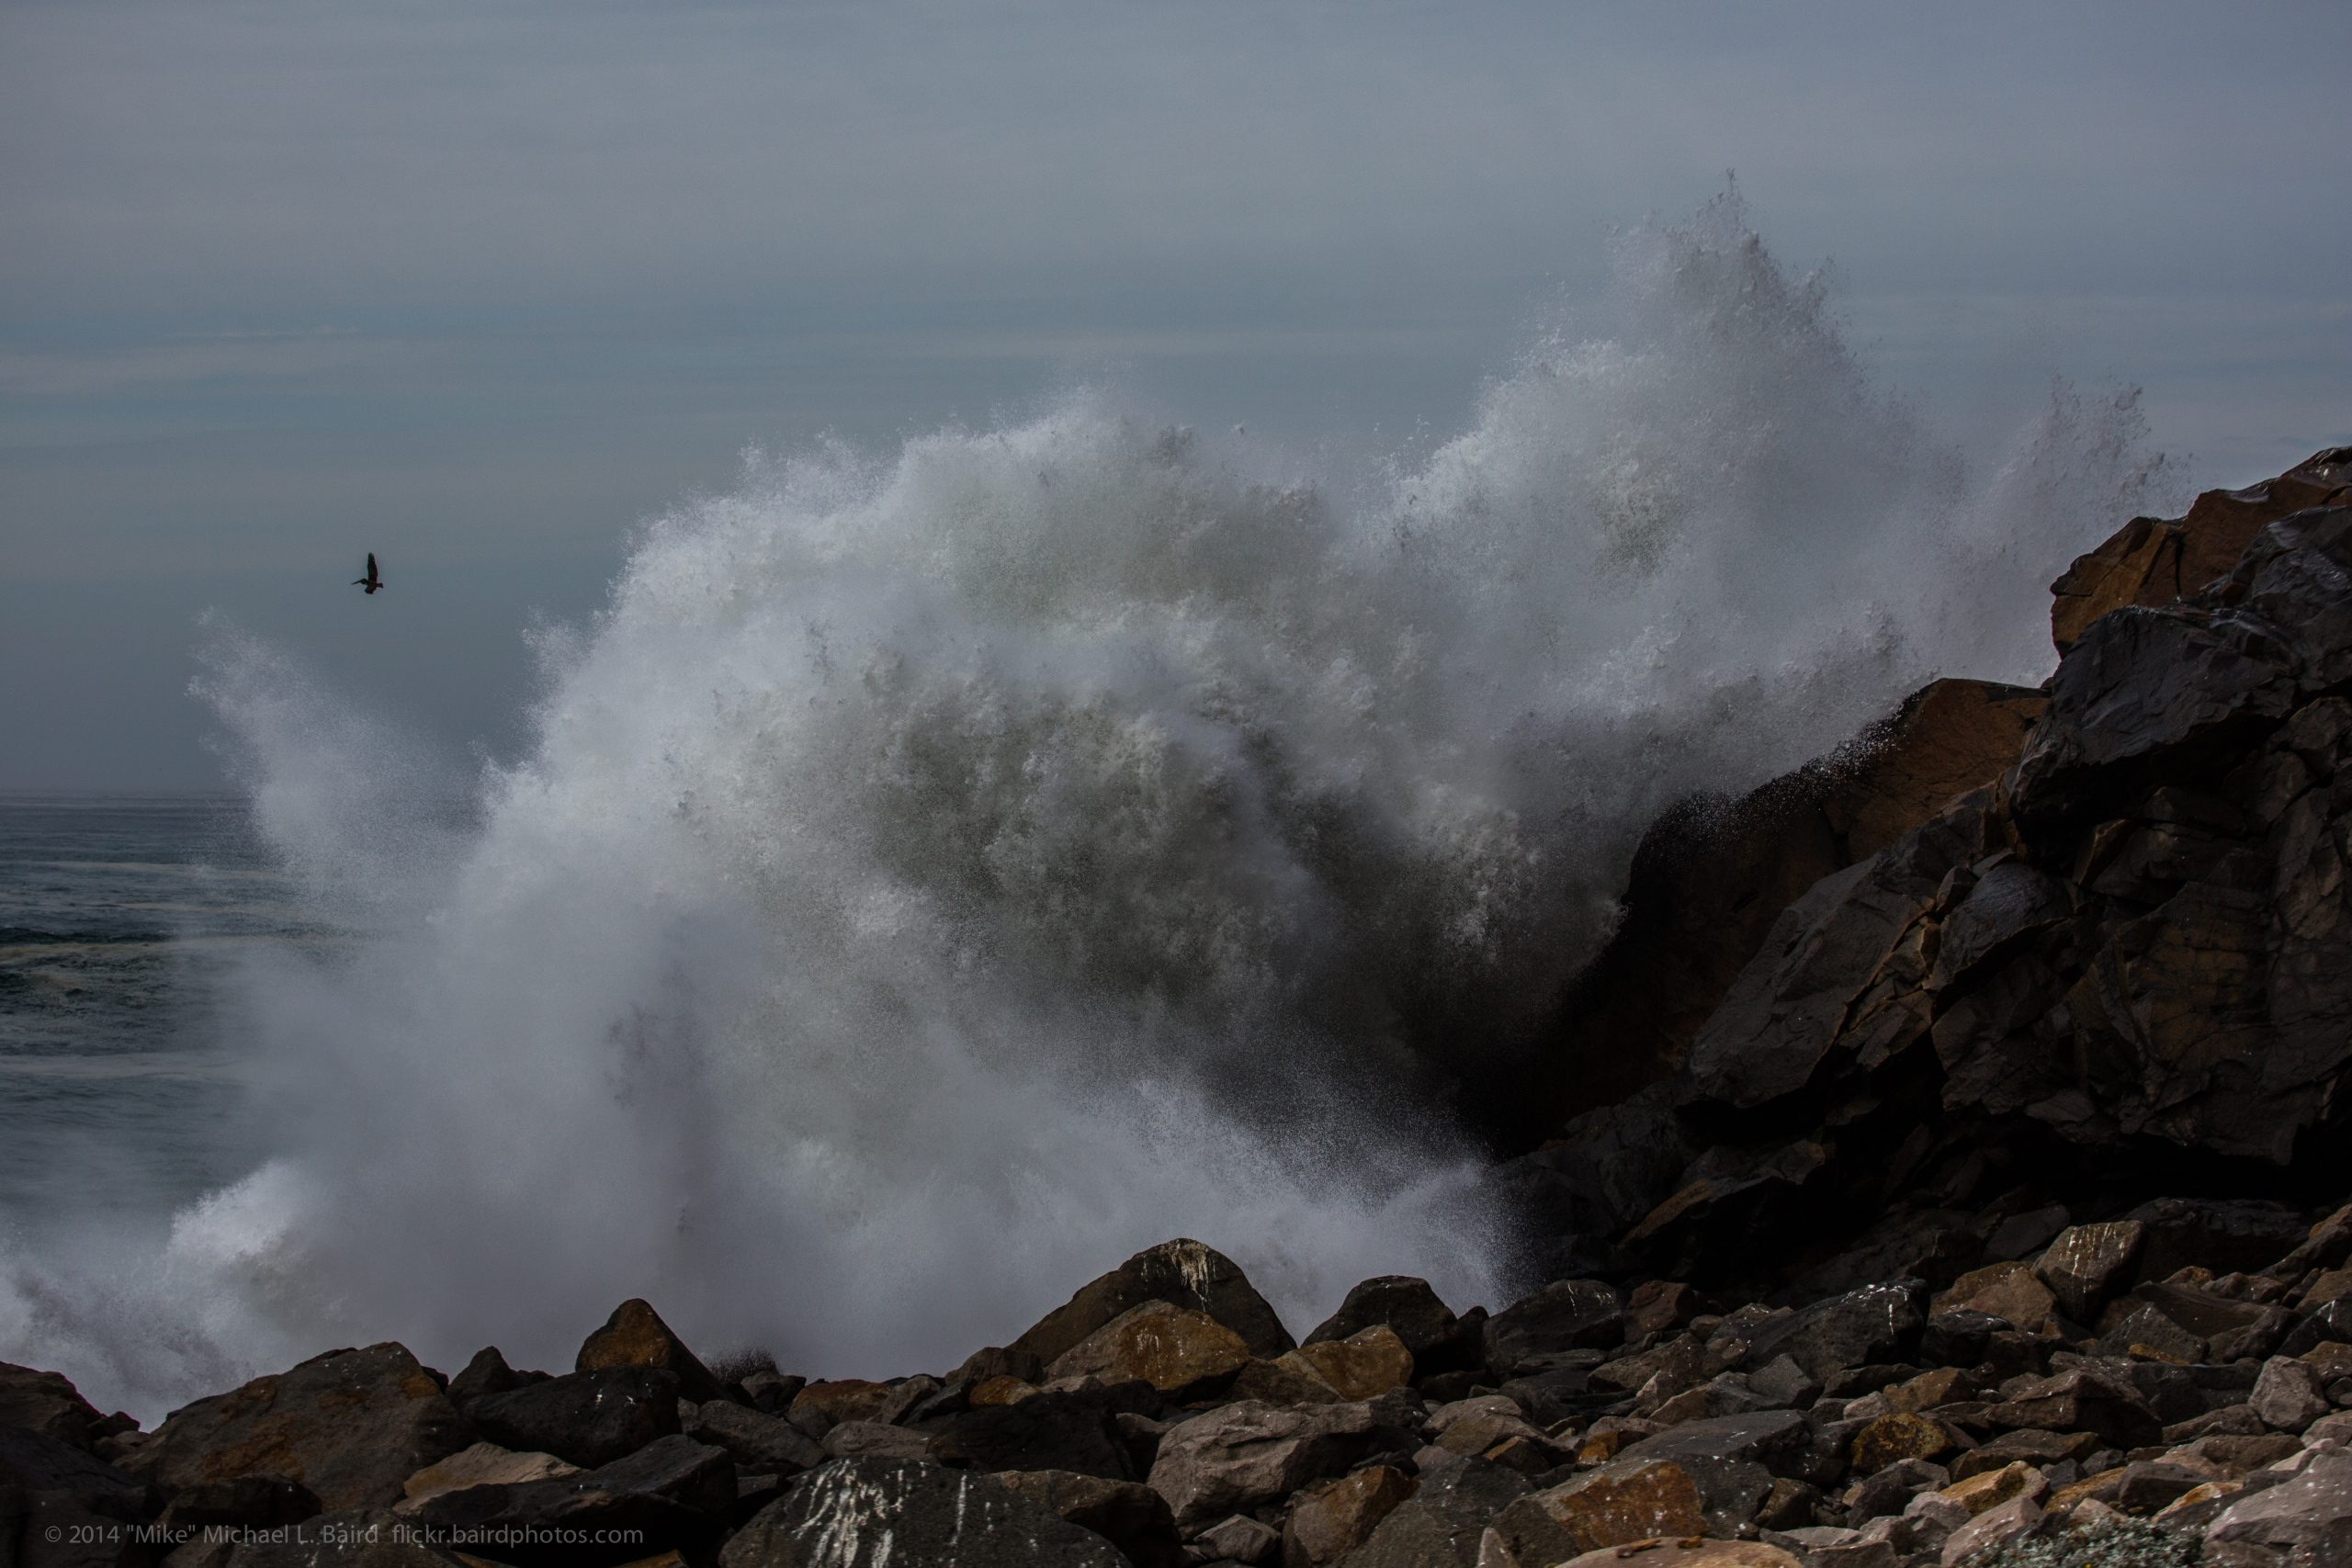 How will climate change likely affect the Morro Bay watershed and estuary?